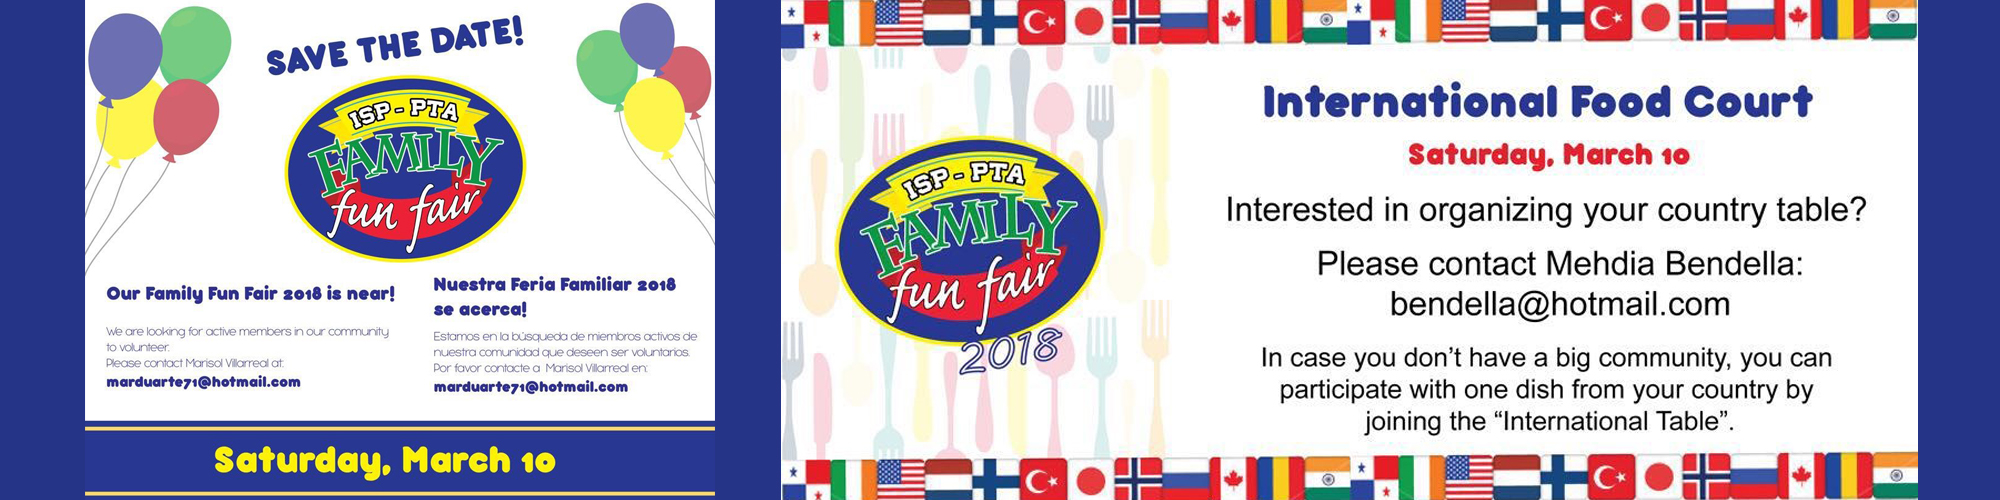 PTA Save the Date Family Fun Fair and International Food Court